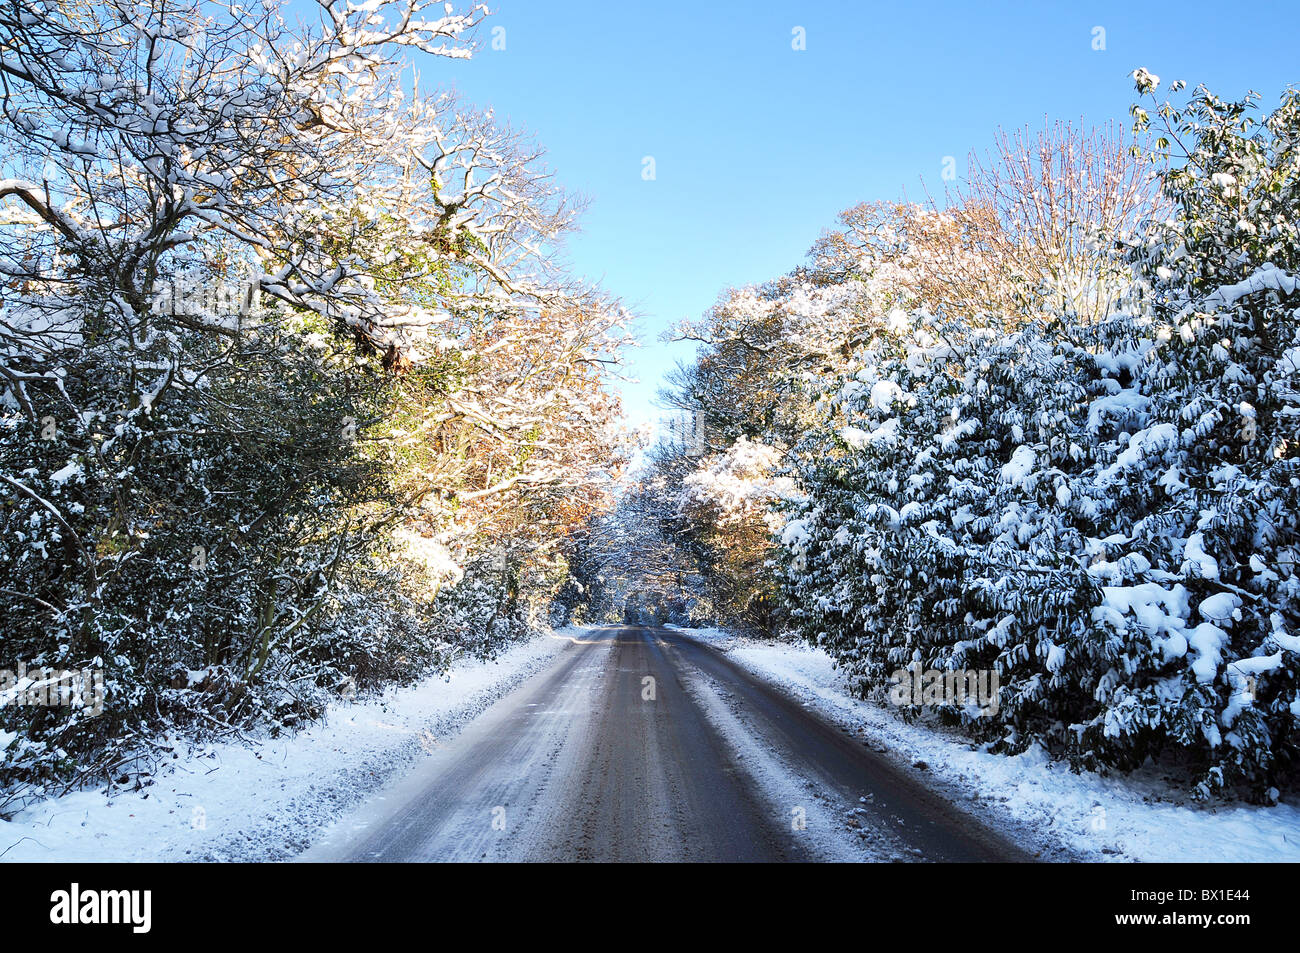 Winter road - Stock Image